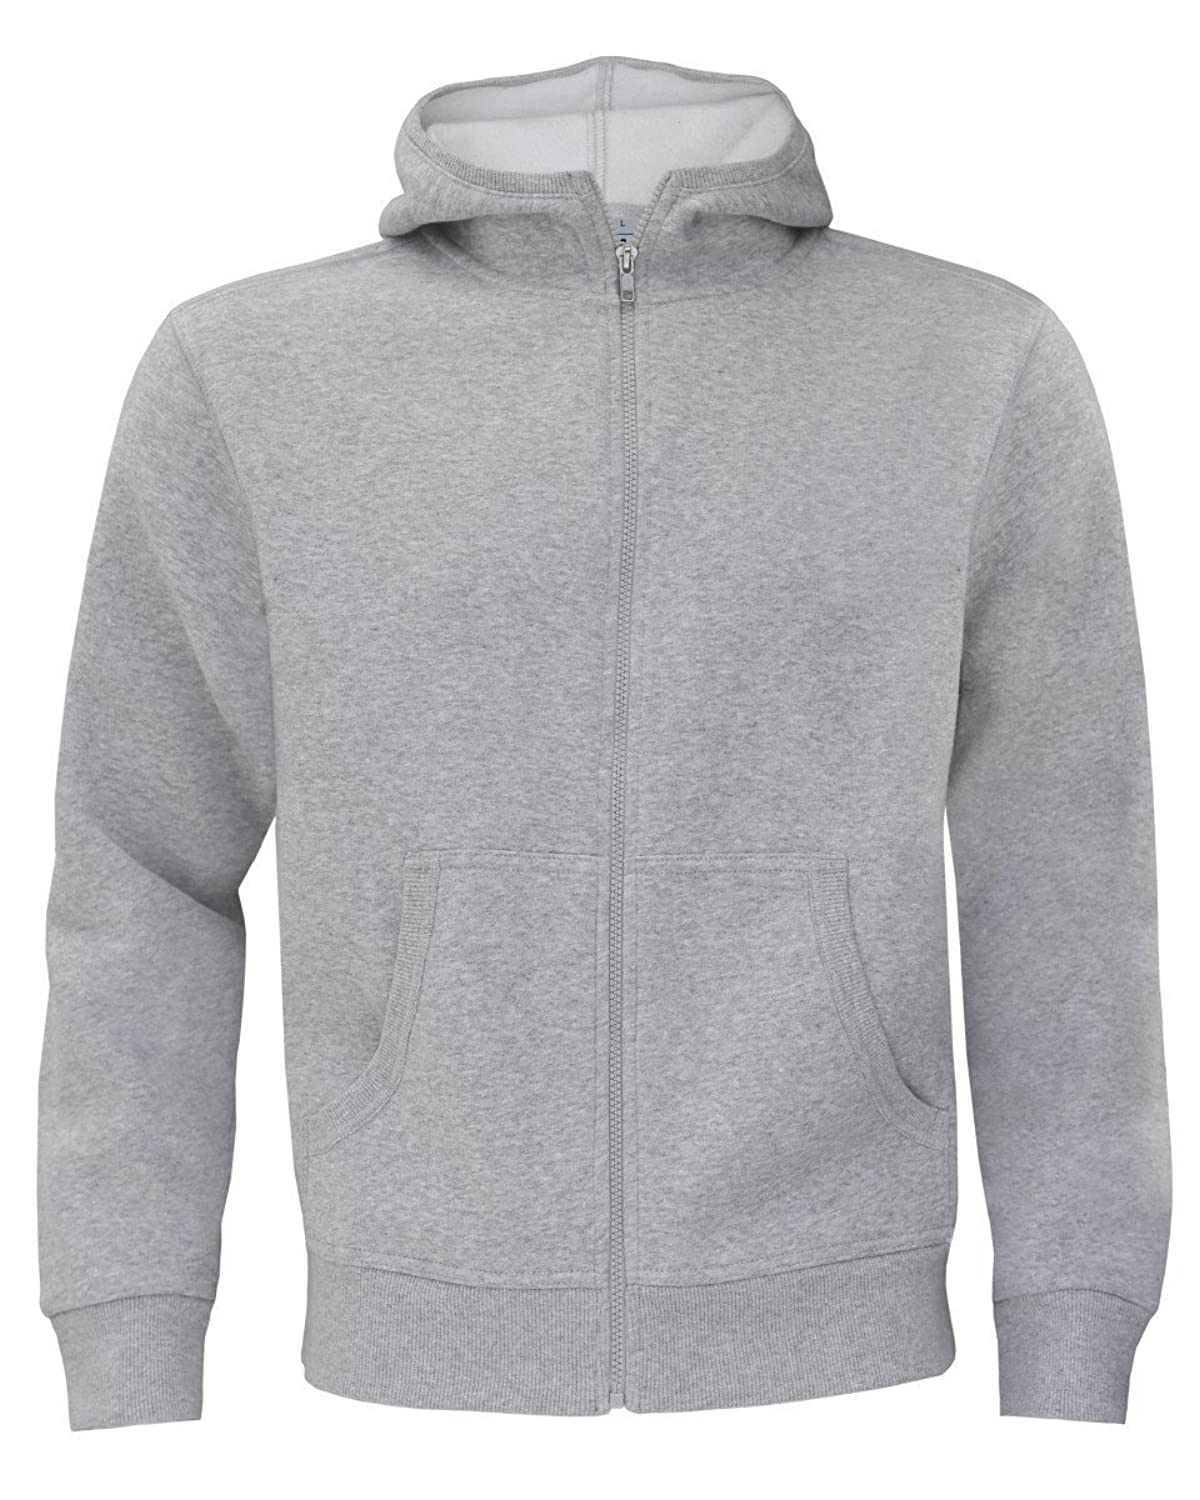 B&C Collection Monster Mens Zip Up Hoodie Hooded Sweatshirt Heather Grey M